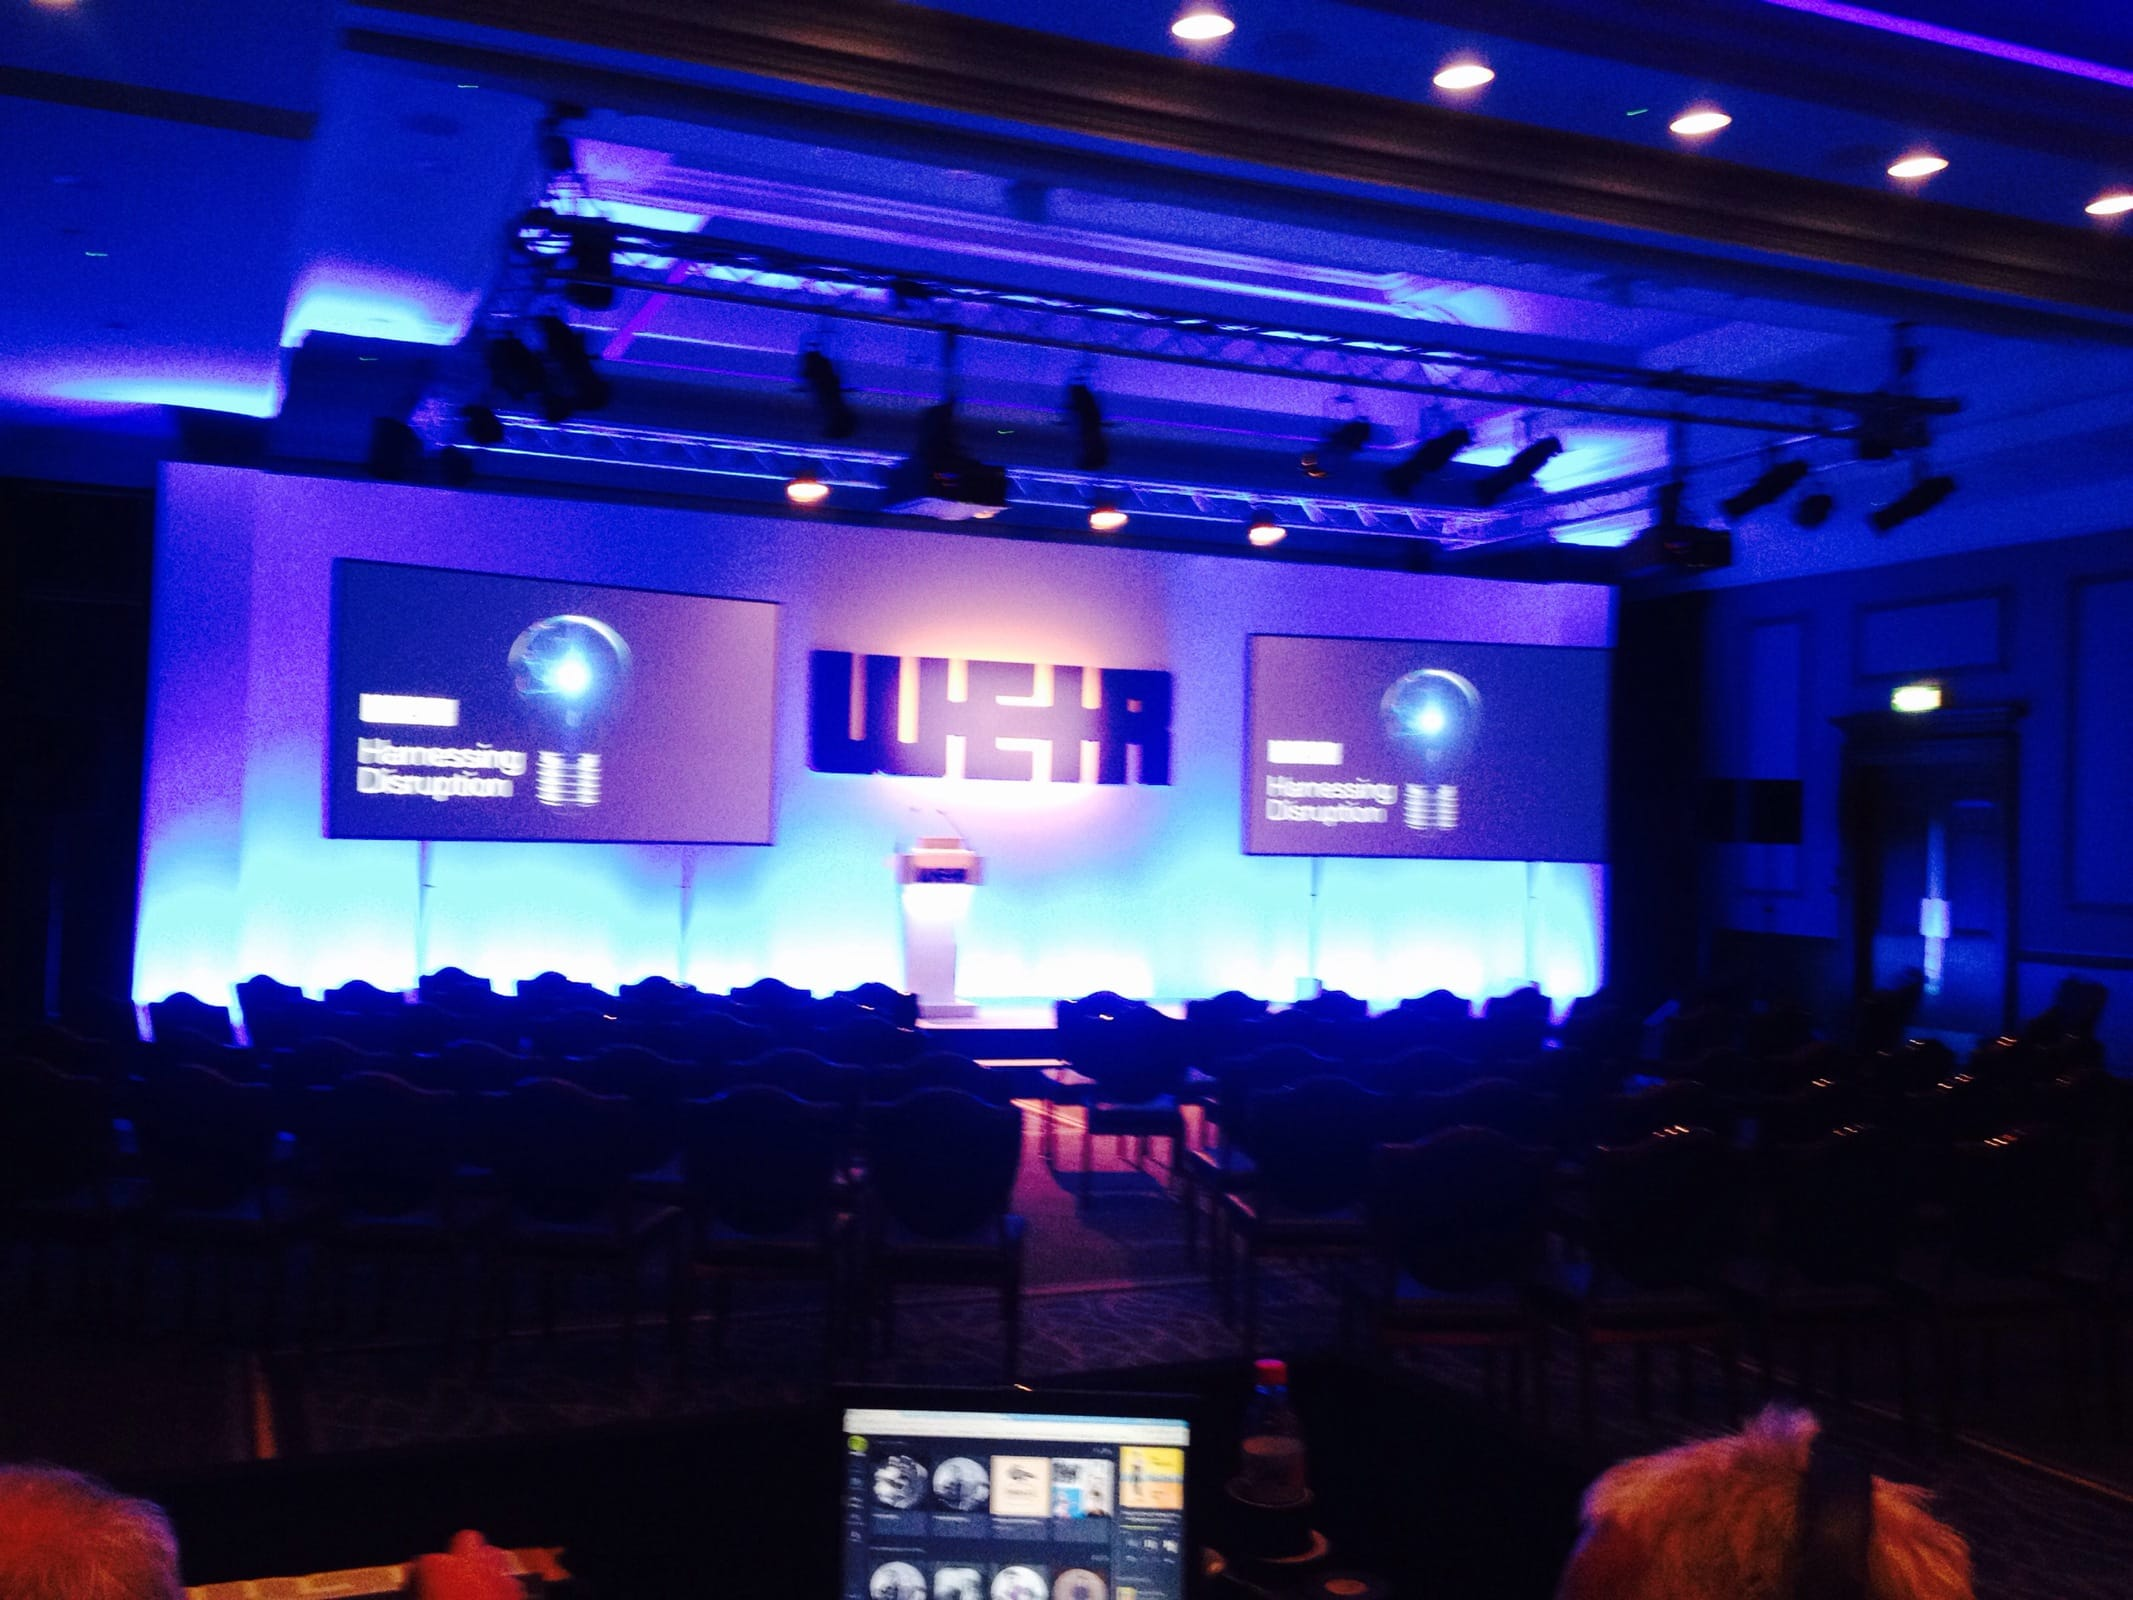 Gleneagles hotel Weir group international management conference